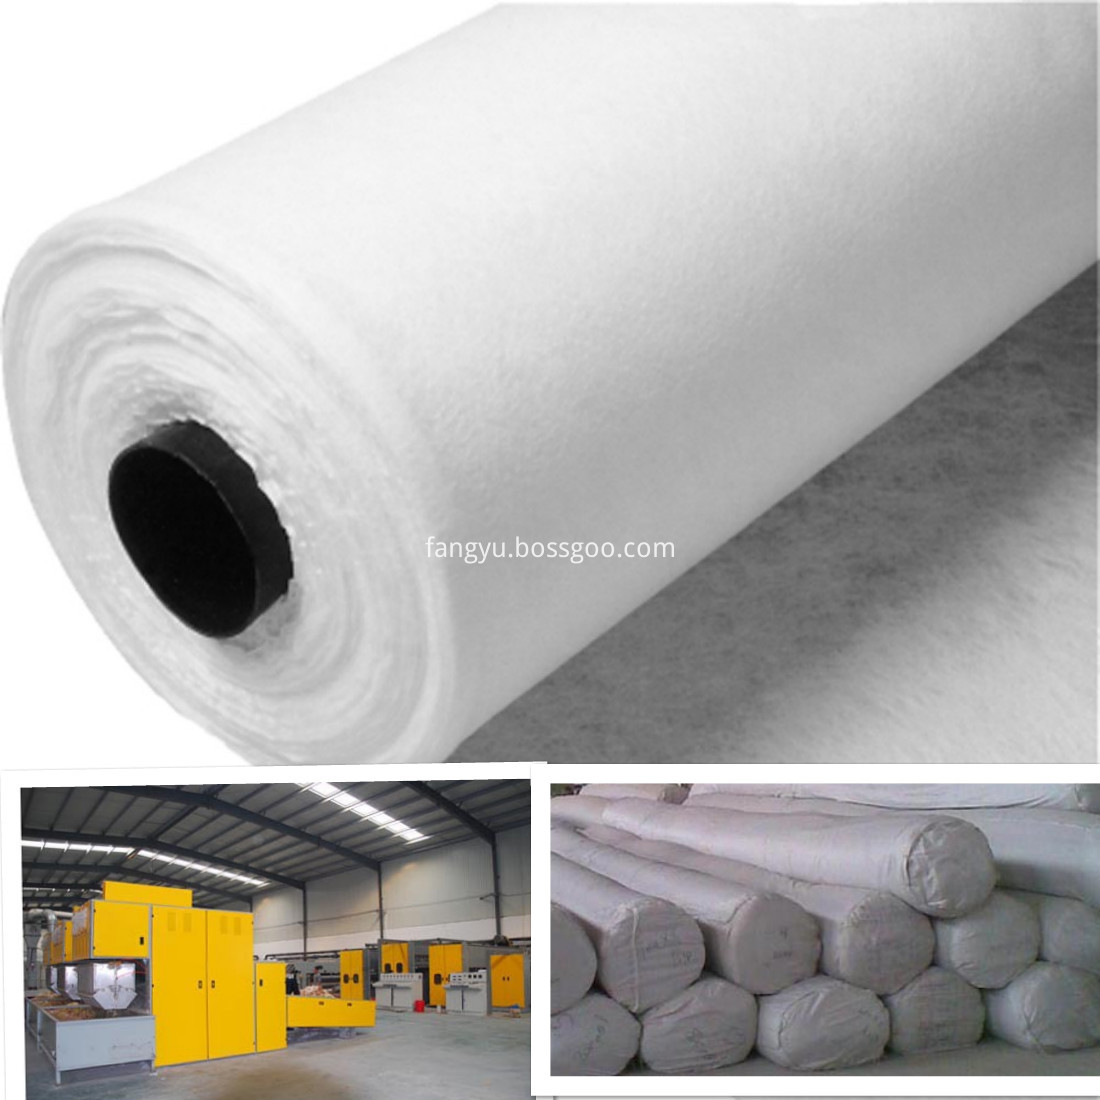 packing of Geo-textile non woven fabric